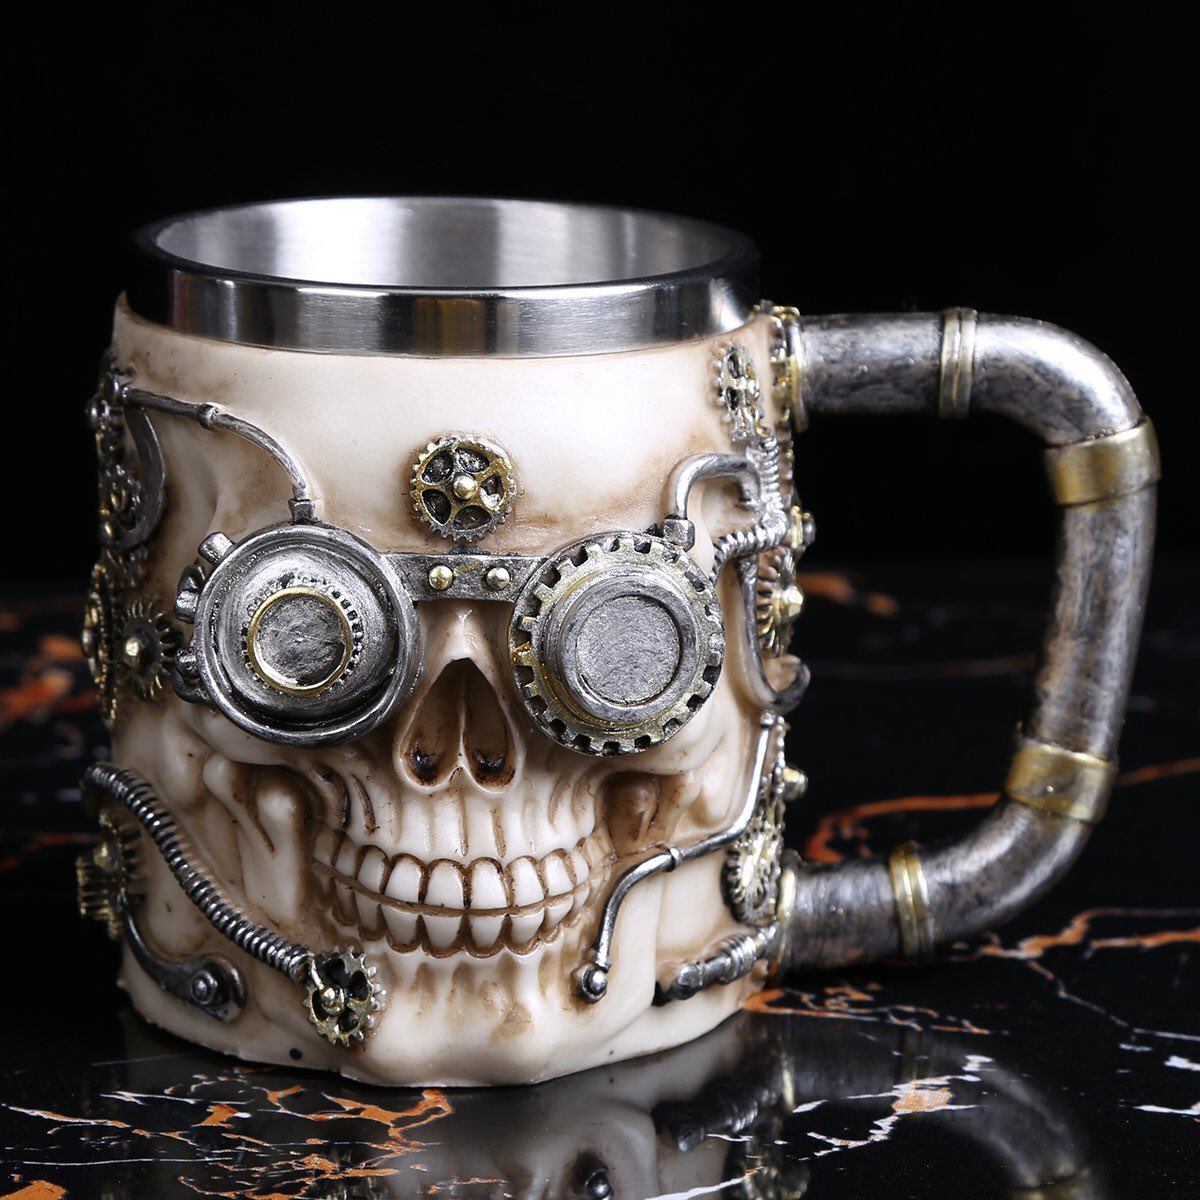 My Daily #Steampunk ⚙️ #Geek 🤓 #Space 🚀 #SamaCollection 🗞️ of Tweets with @SteamPunkLv100 @QoSPress ⭐ Feat. @SchreinerSue View More Selections 👉 https://t.co/iLWqTUIbYx